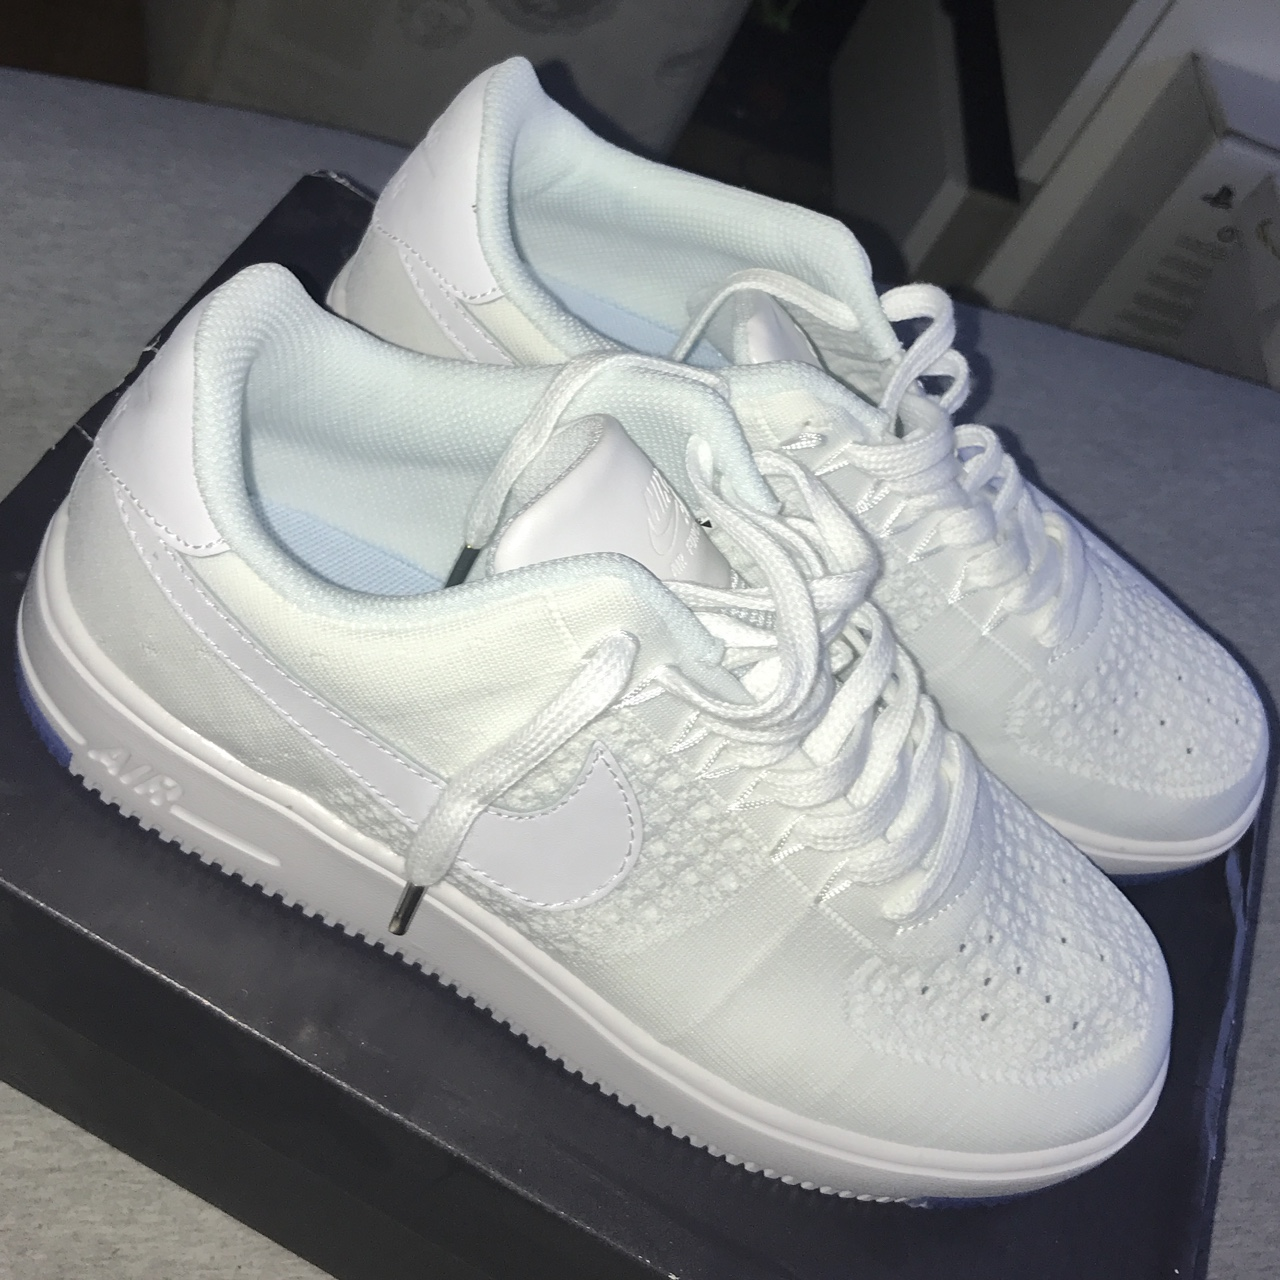 outlet store 4f66a 8680b Nike Air Force 1 Flyknit, Brand new never worn.... - Depop